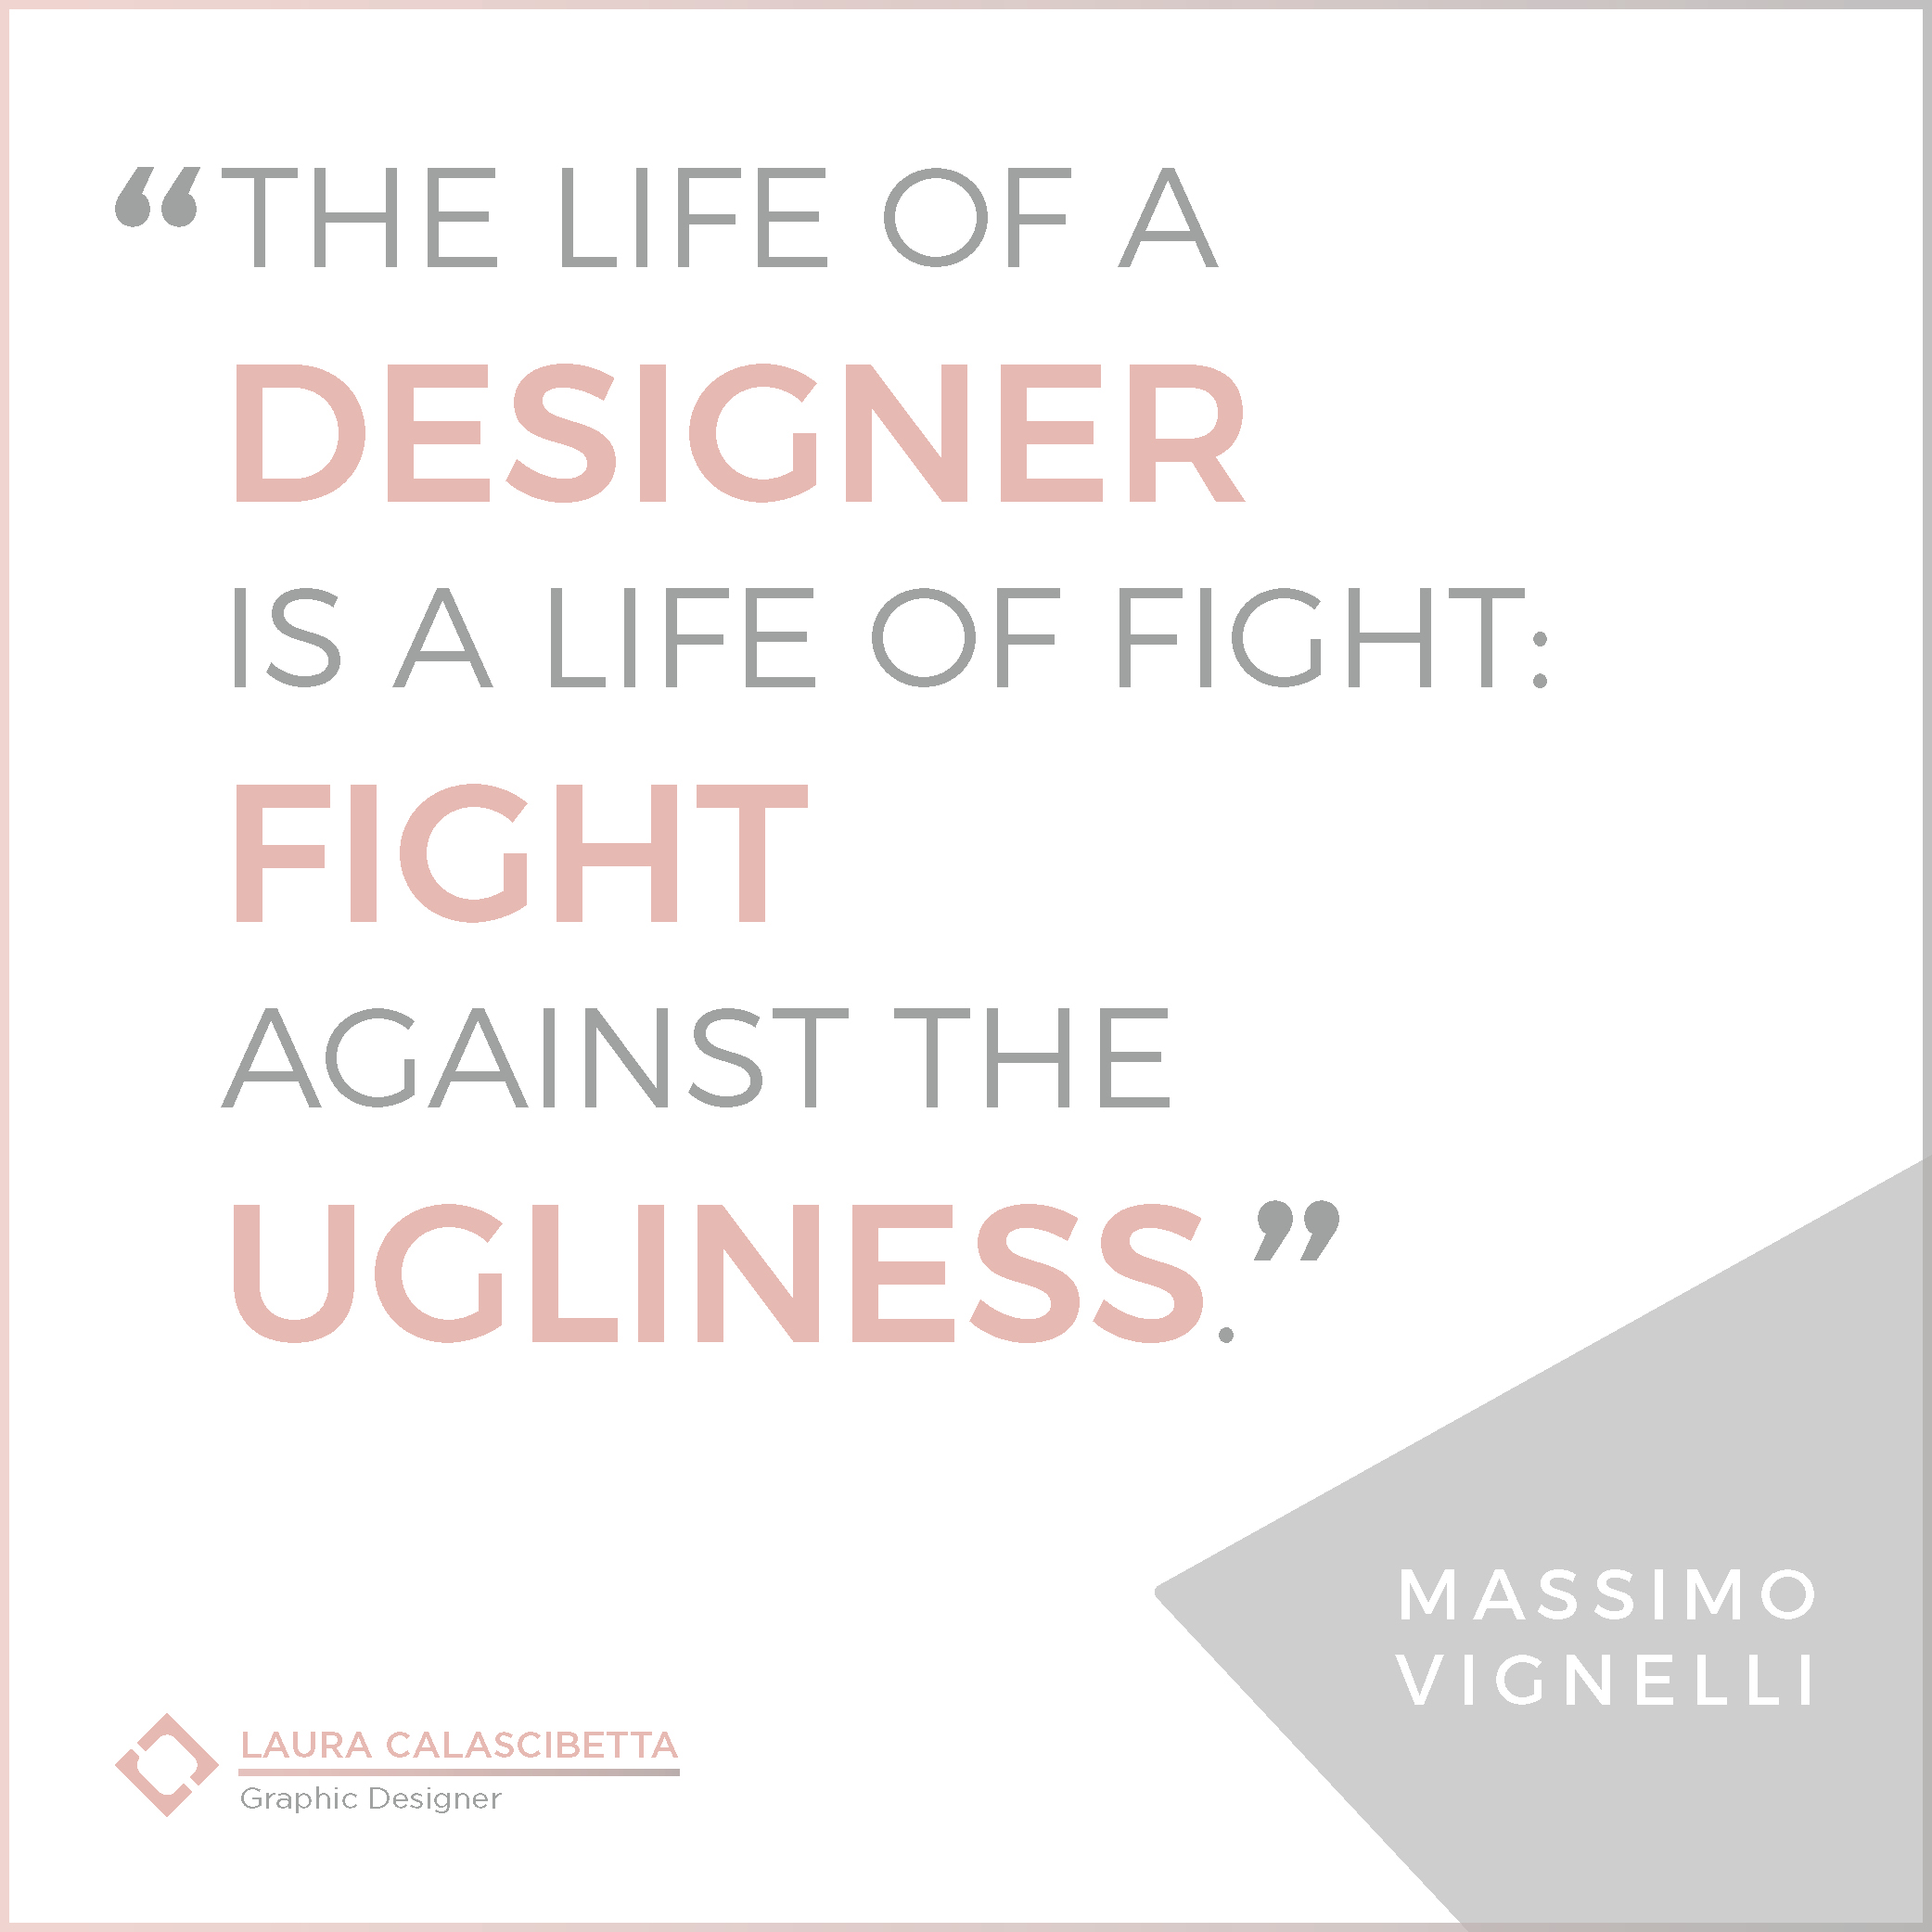 Quote Massimo Vignelli the life of a designer is a life of fight: fight against the ugliness.